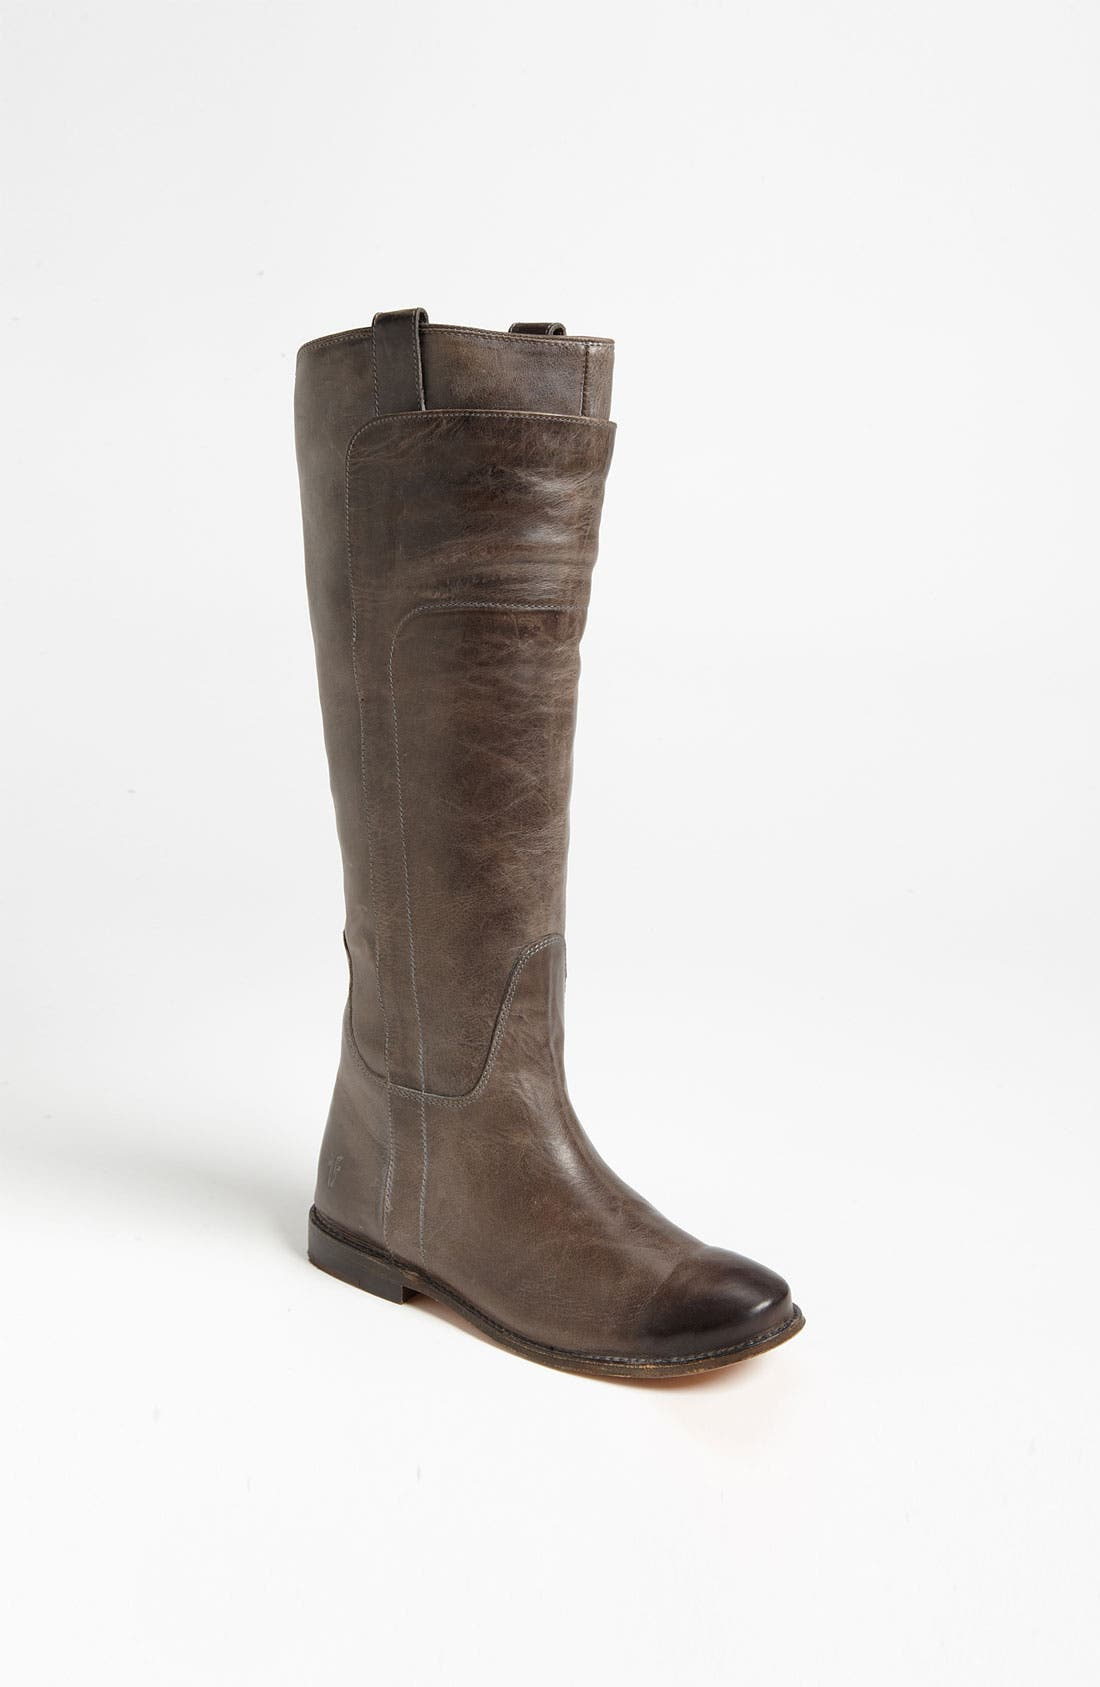 Main Image - Frye 'Paige' Tall Leather Riding Boot